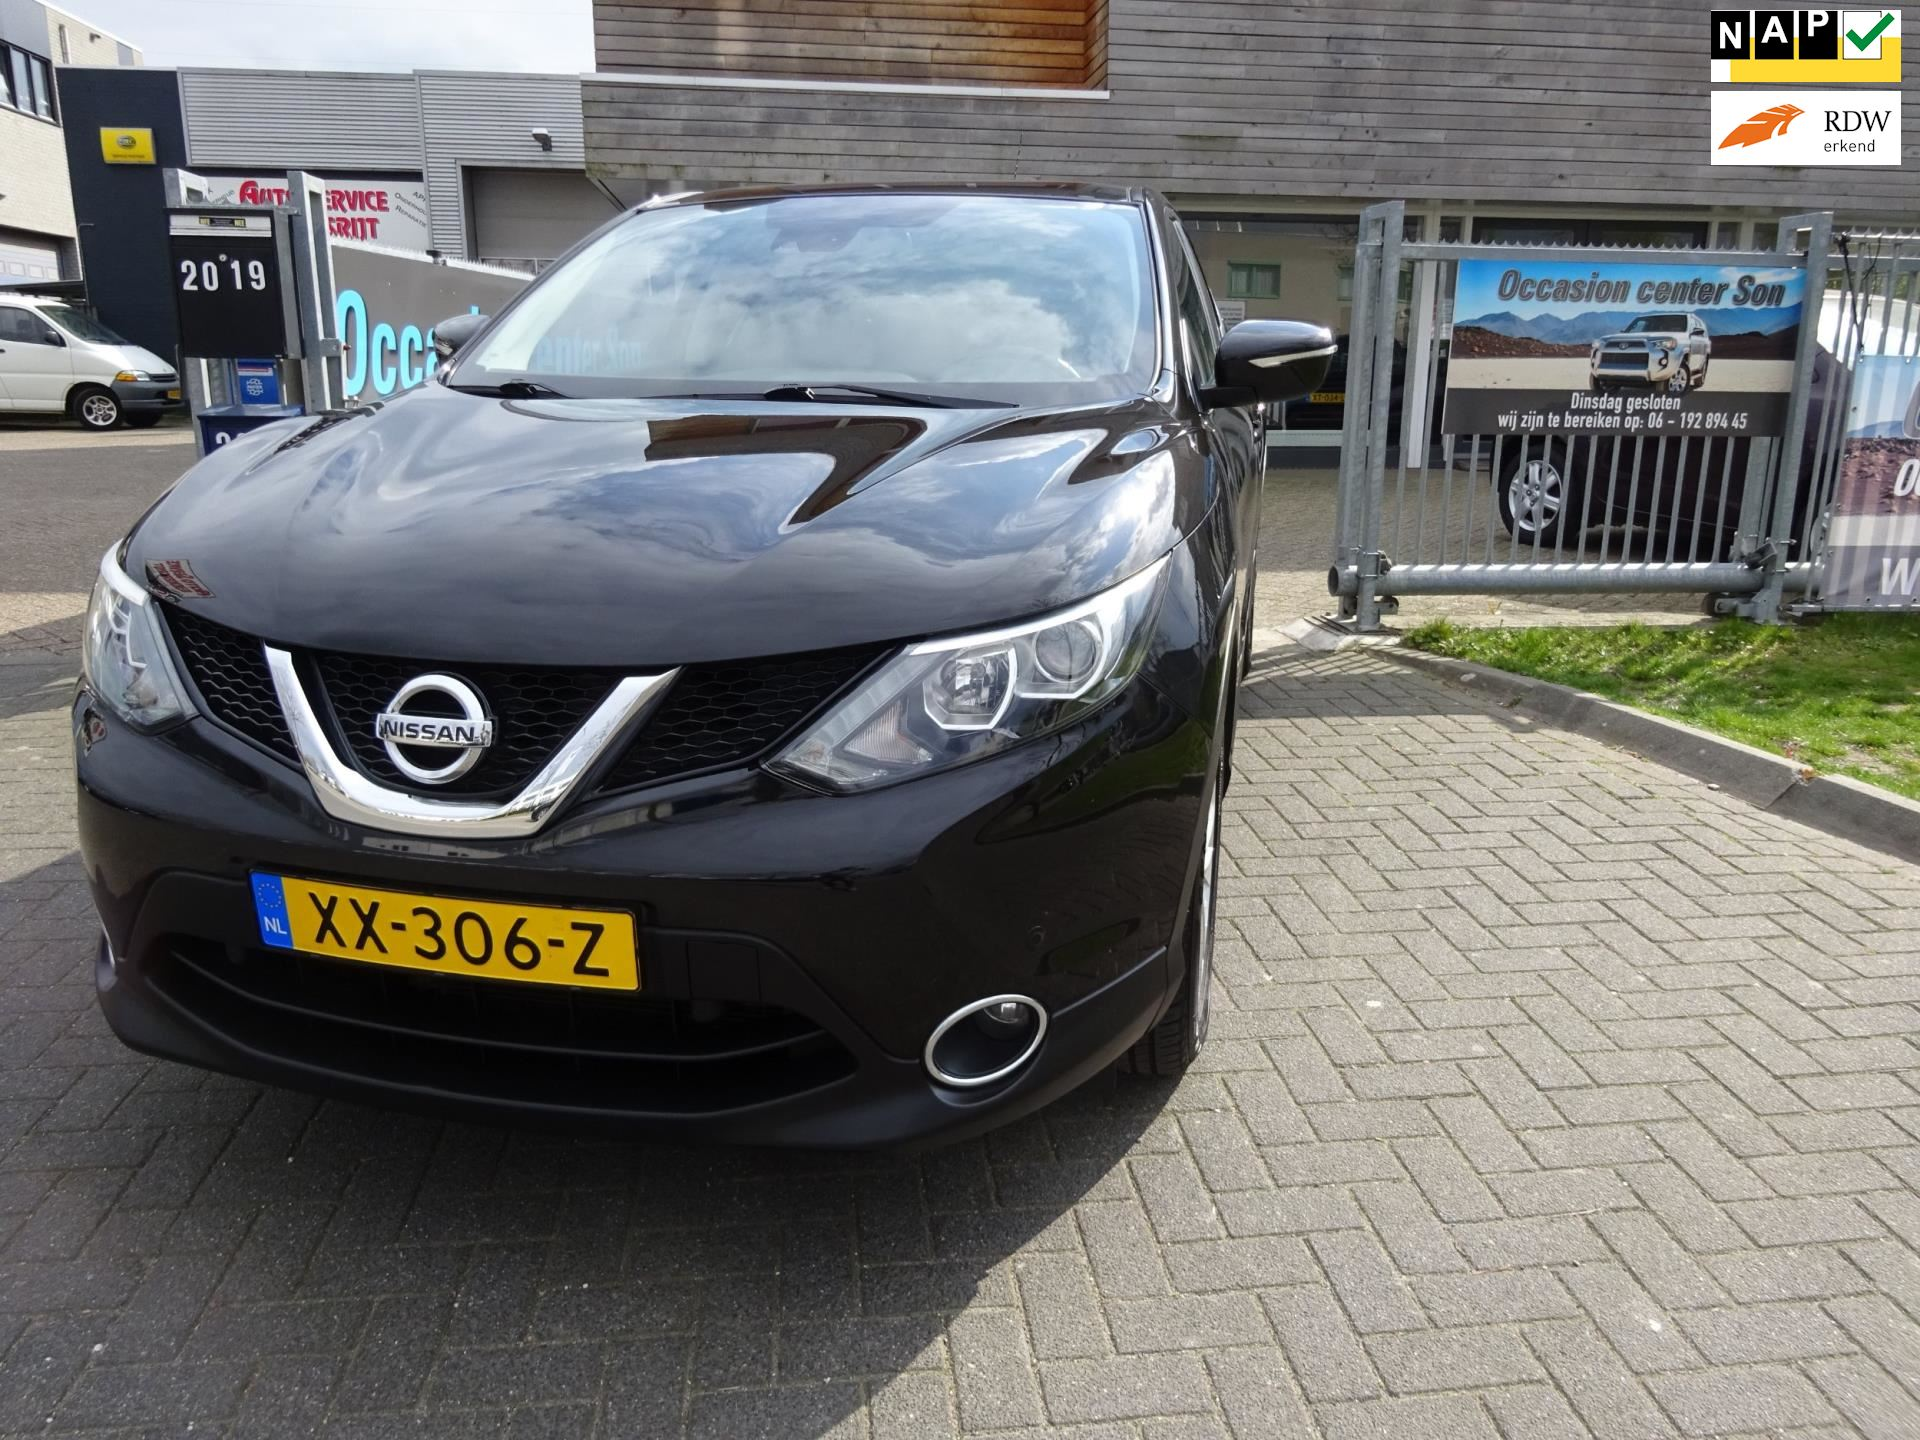 Nissan Qashqai occasion - Occasion Center Son B.V.